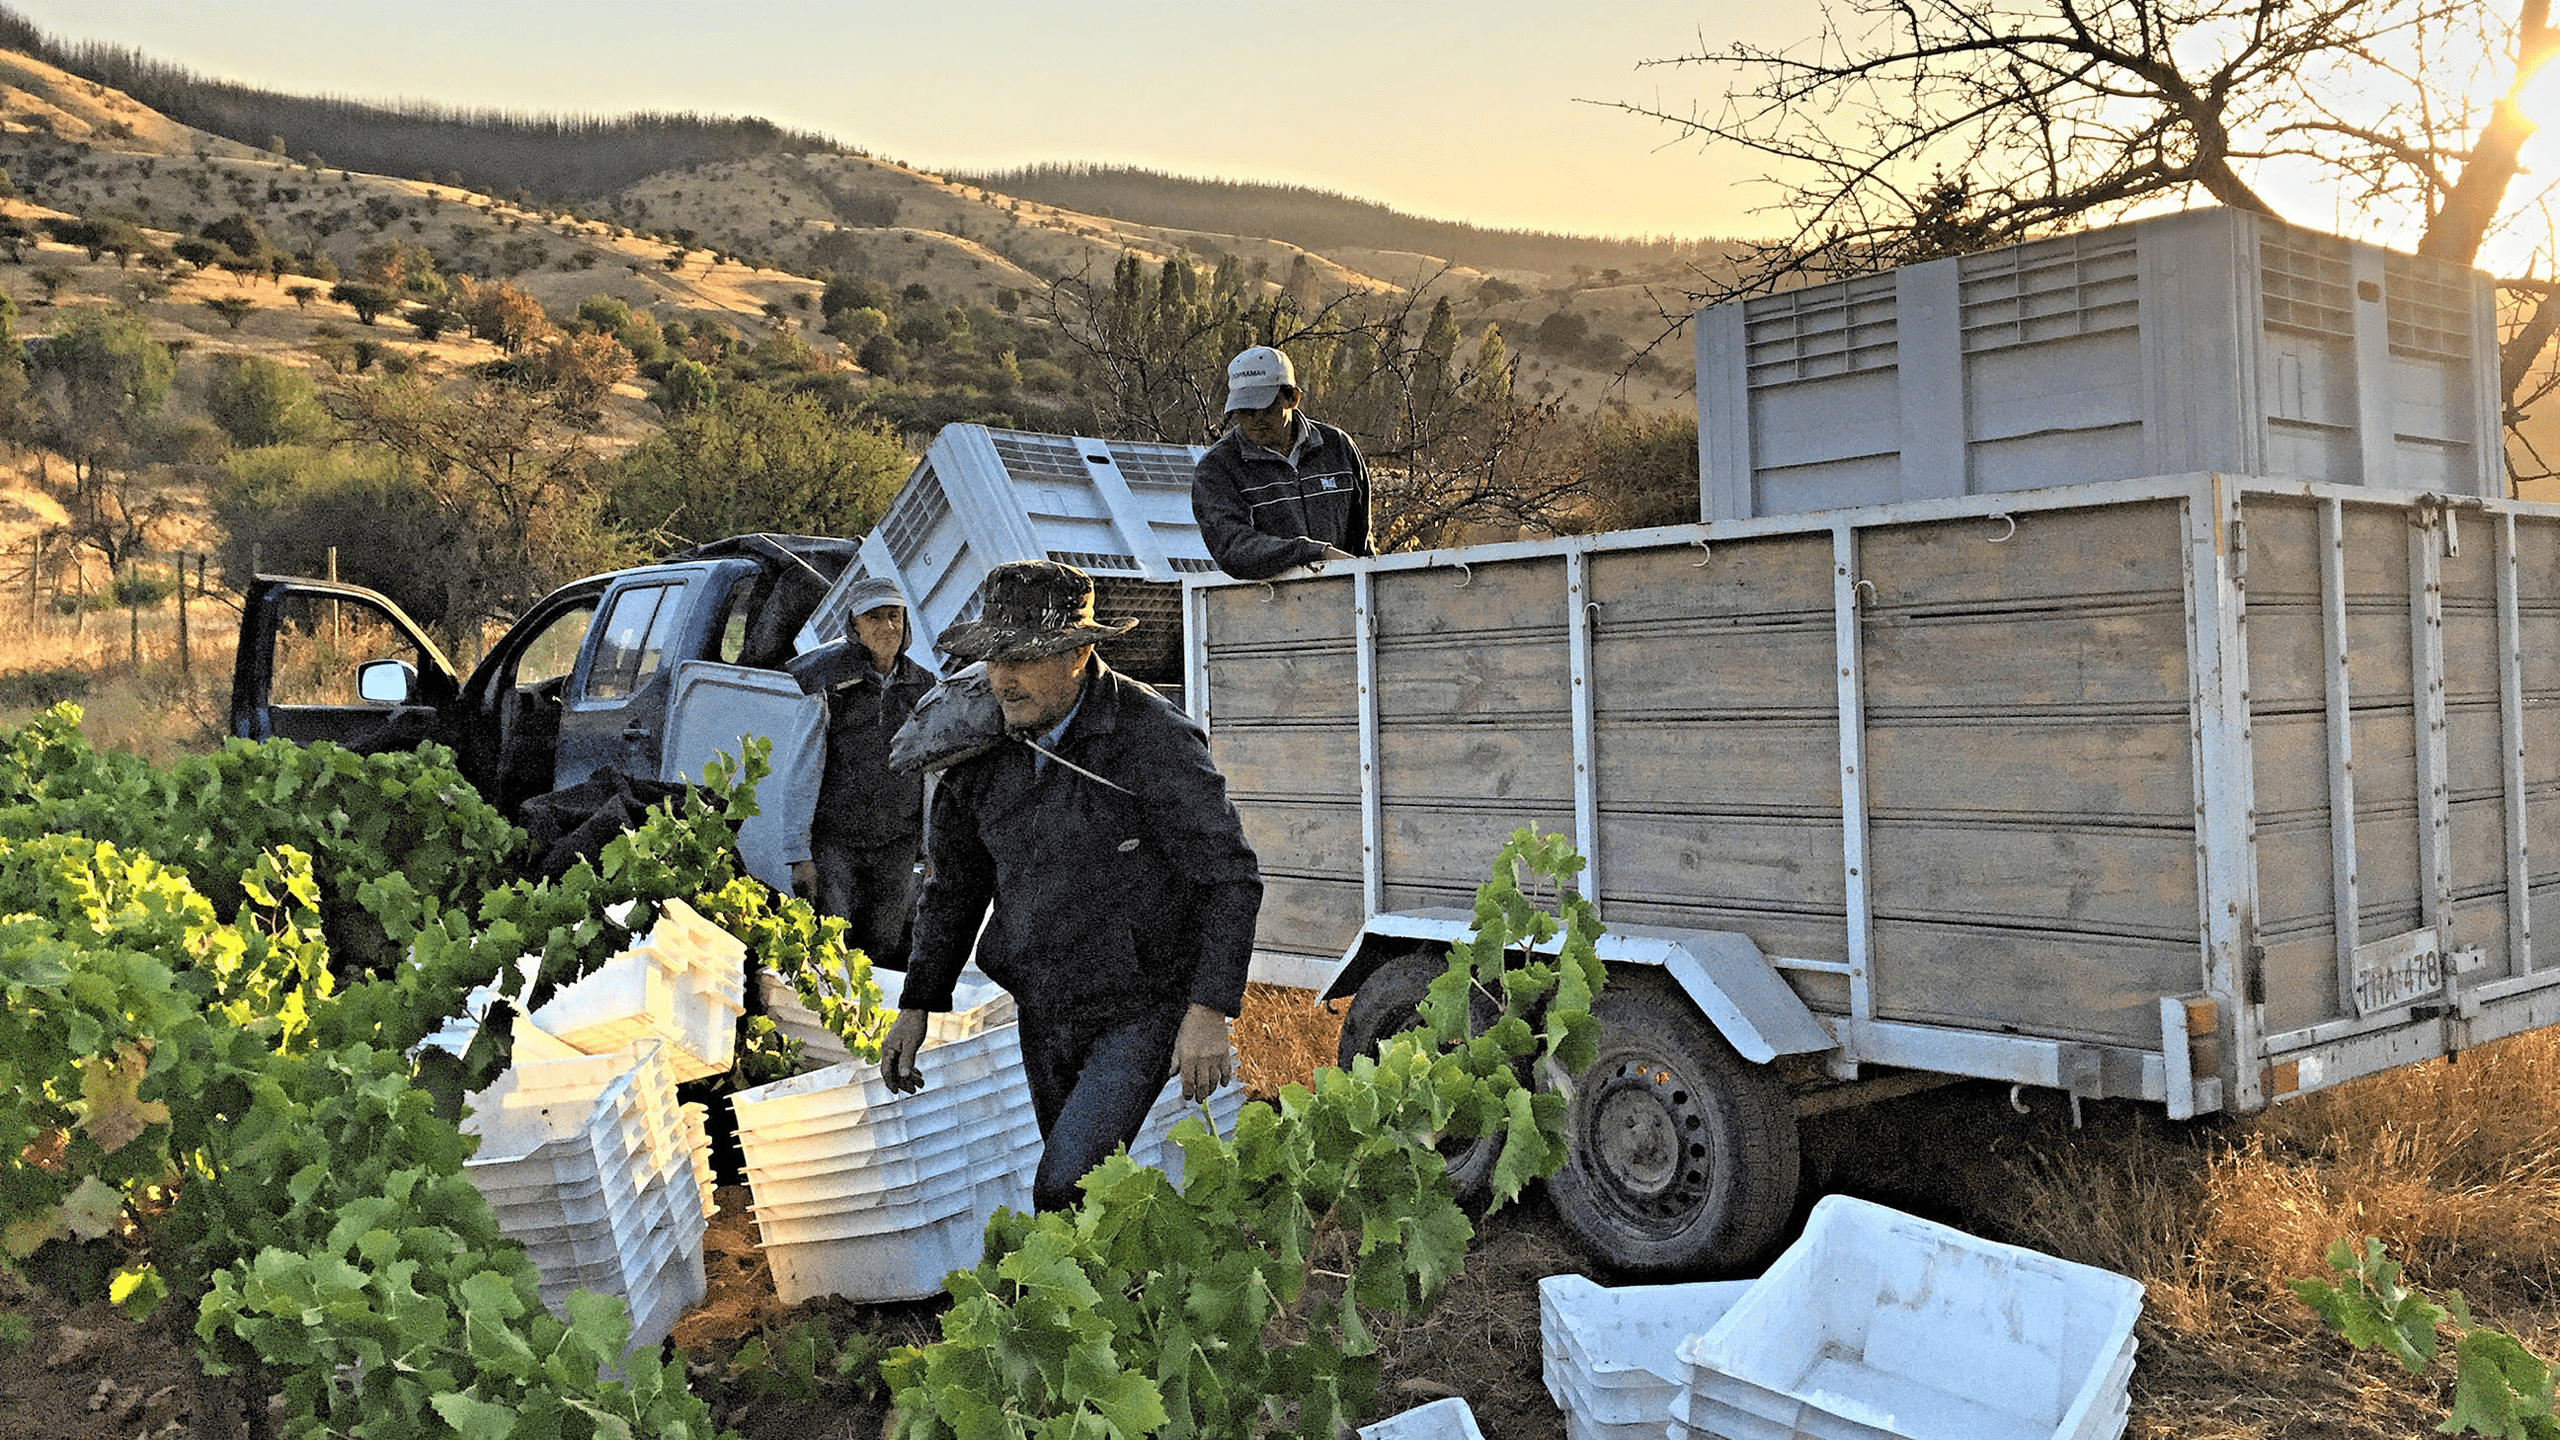 Garage Wine Co. uses dry-farmed grapes grown by small farmers in the Maule Valley